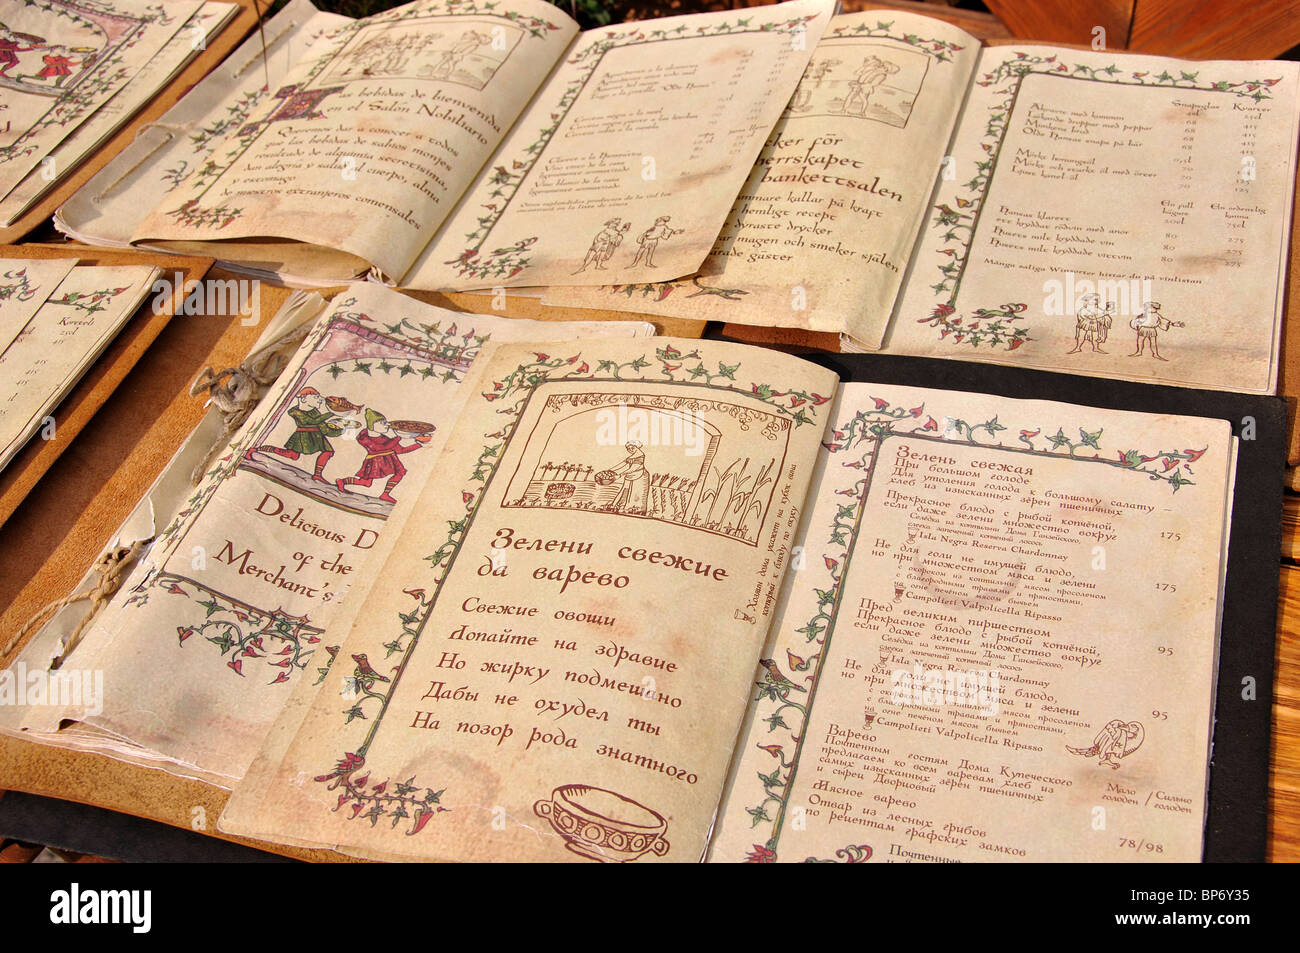 Restaurant menus in period script, Olde Haus Restaurant, Old